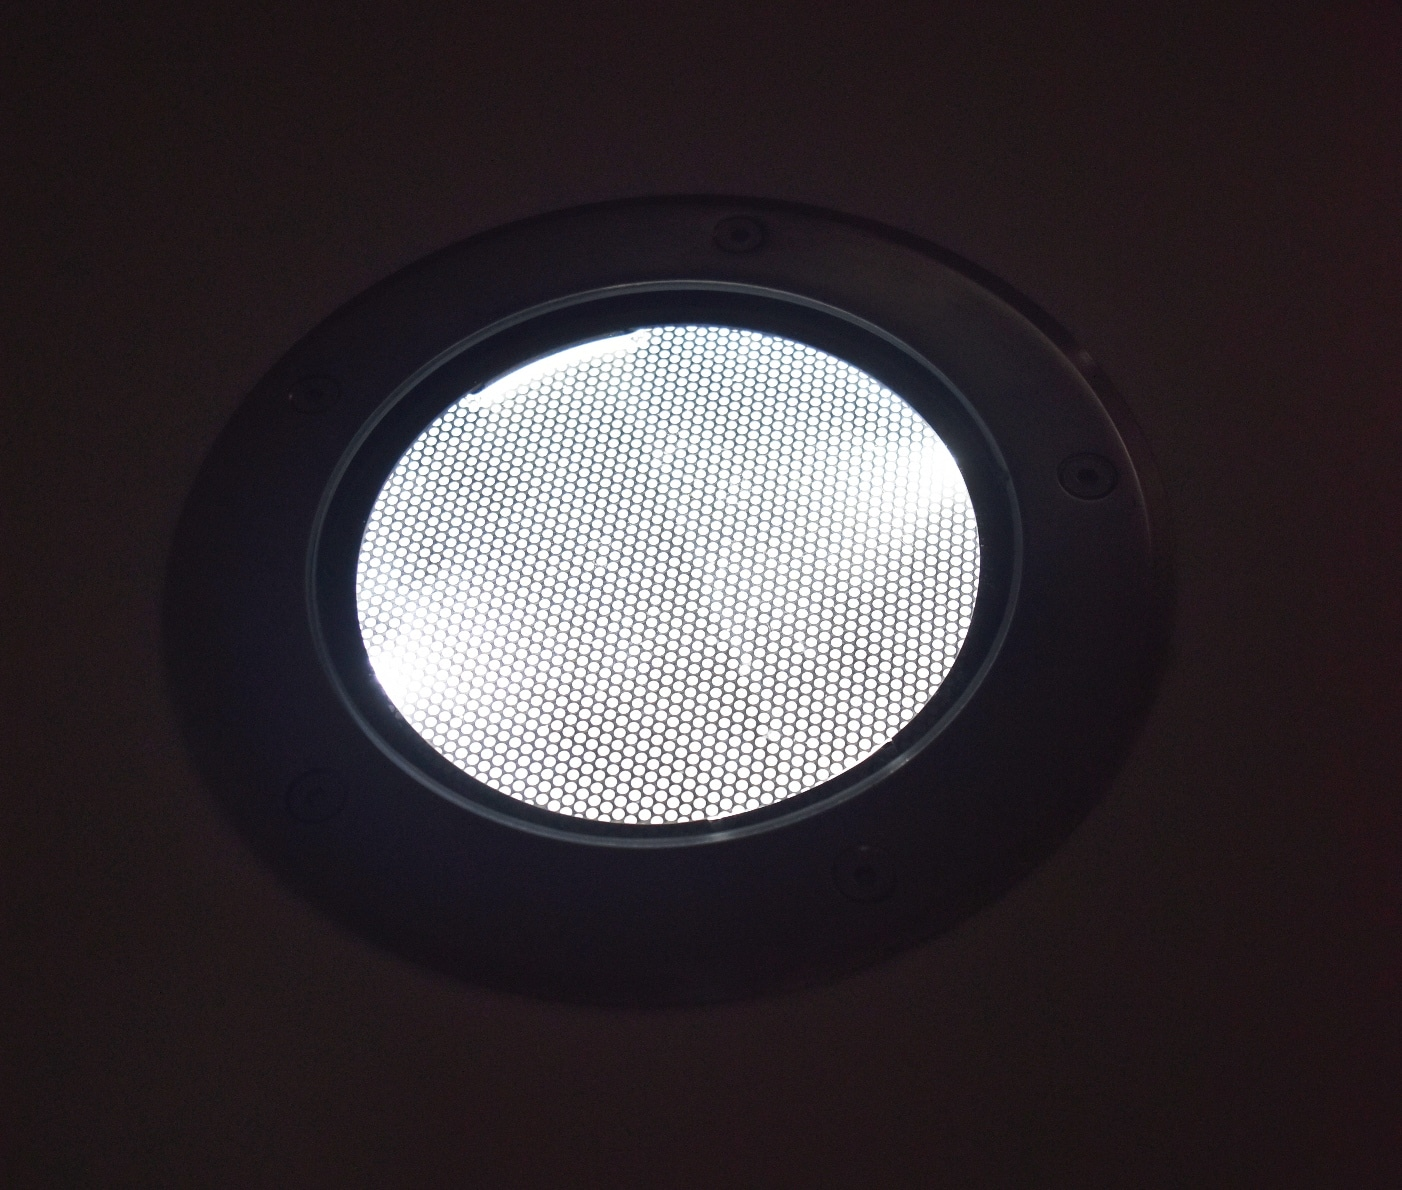 in ground lighting. Buy Quality Solar LED Ground Lights Online Today. BlackFrog Are A Leading Supplier Of In Lighting -